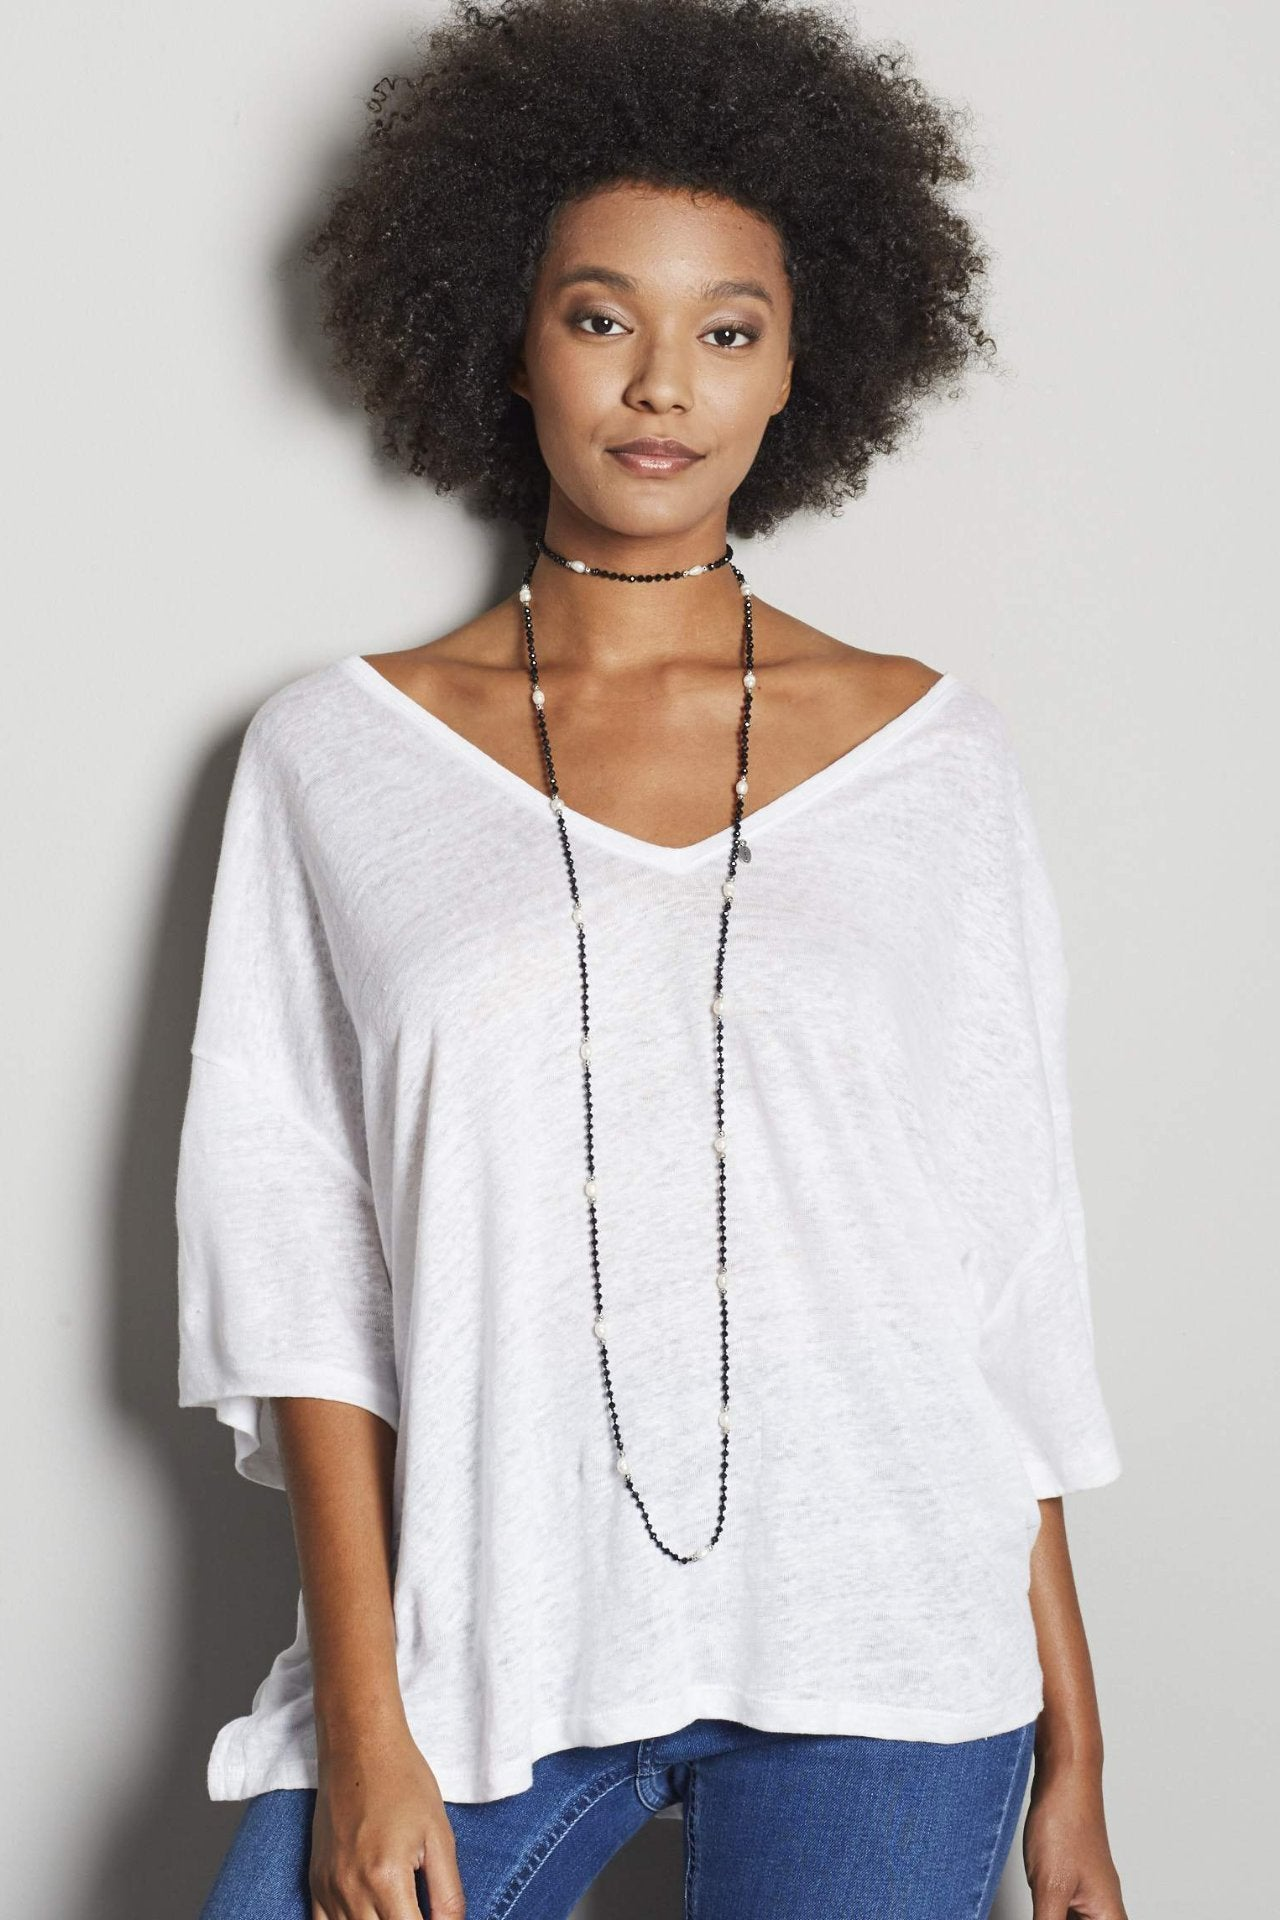 Zacasha Layering Necklace W/Pearls